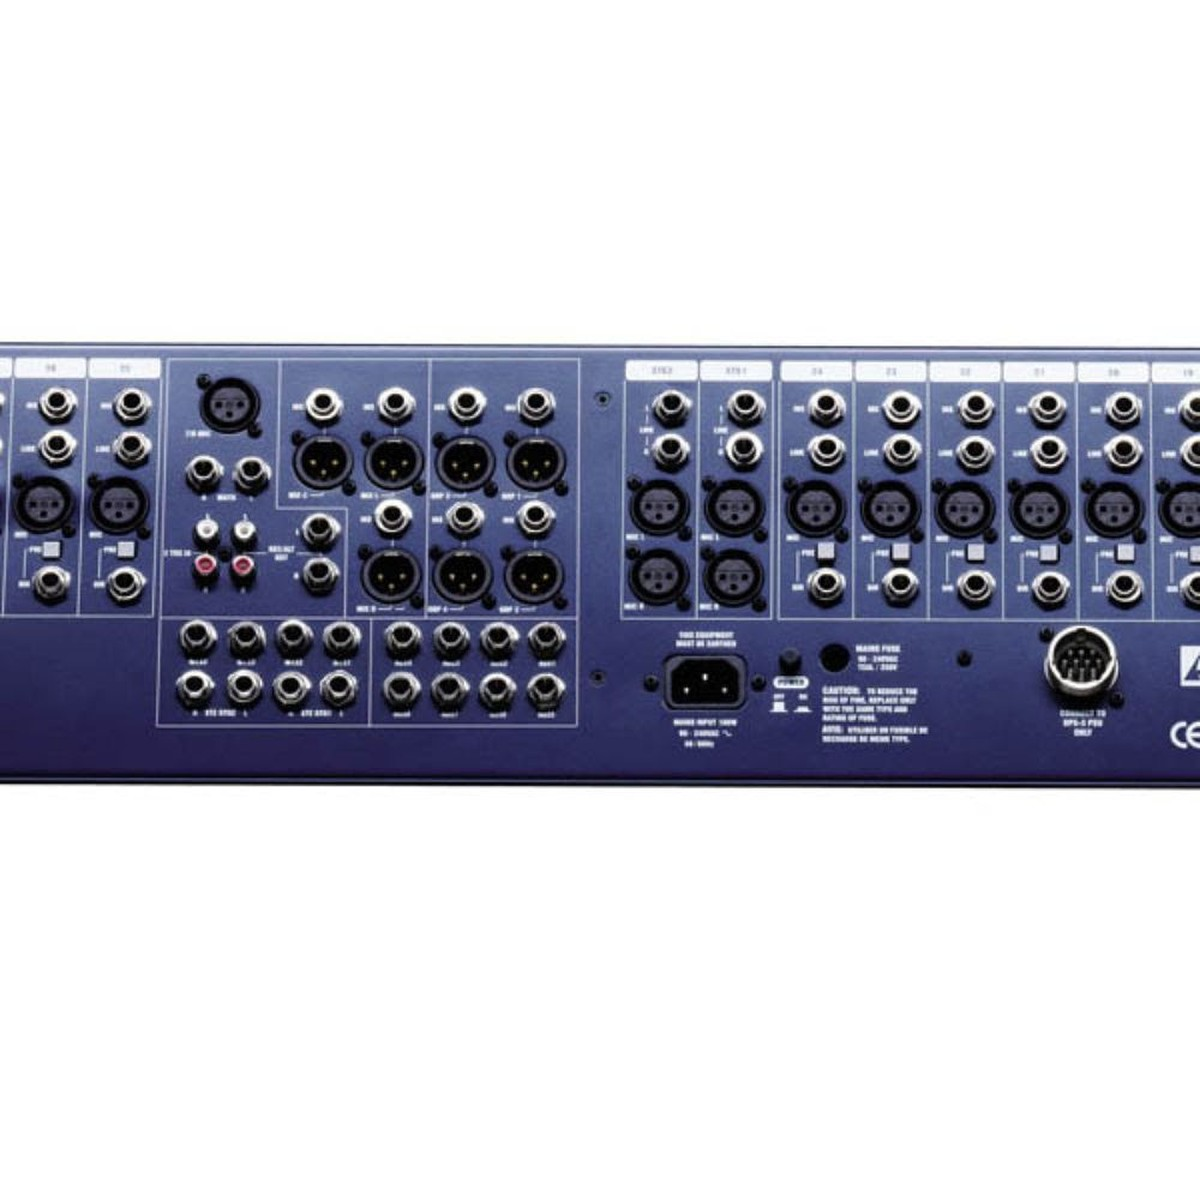 Secondhand Sound And Lighting Equipment Mixers And